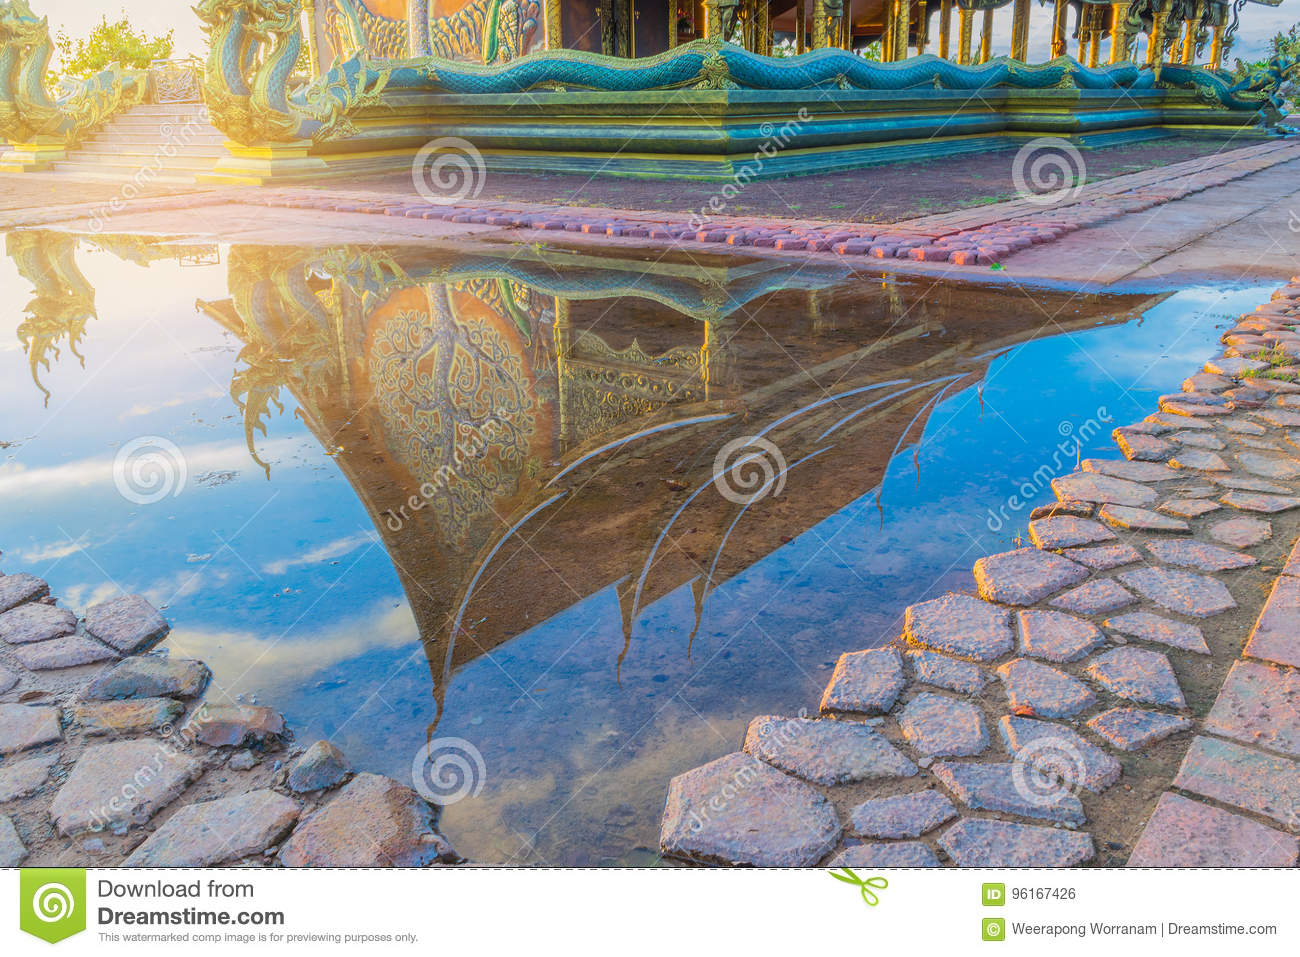 Abstract soft blurred and soft focus silhouette the sanctuary, temple, with shadow reflected in the water, the beam, light and len